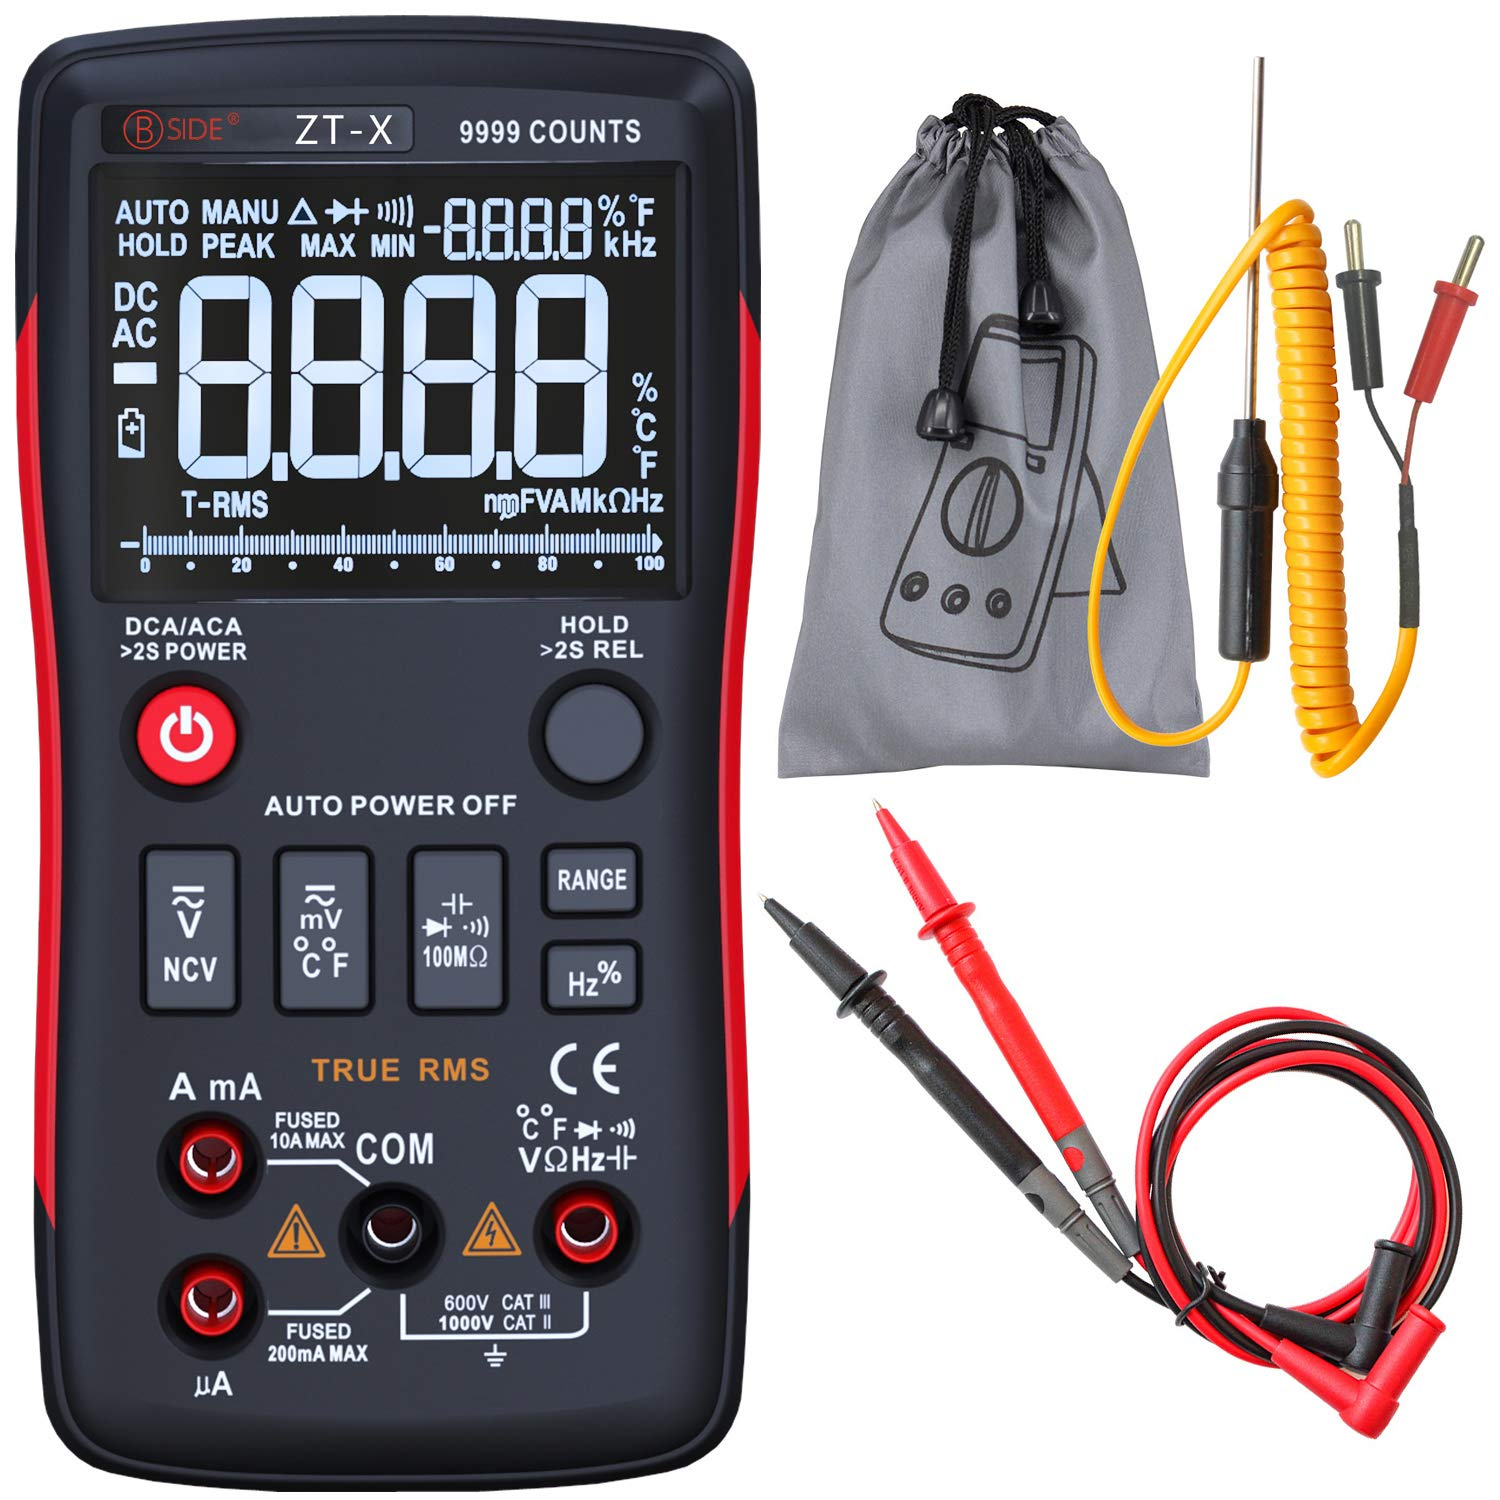 Bside ZT-X True-RMS Digital Multimeter 3-Line Dispaly 9999 Counts Button Design Auto-Ranging DMM Temperature Capacitance AC/DC Voltage Current Multi Meter Tester with Analog Bargraph